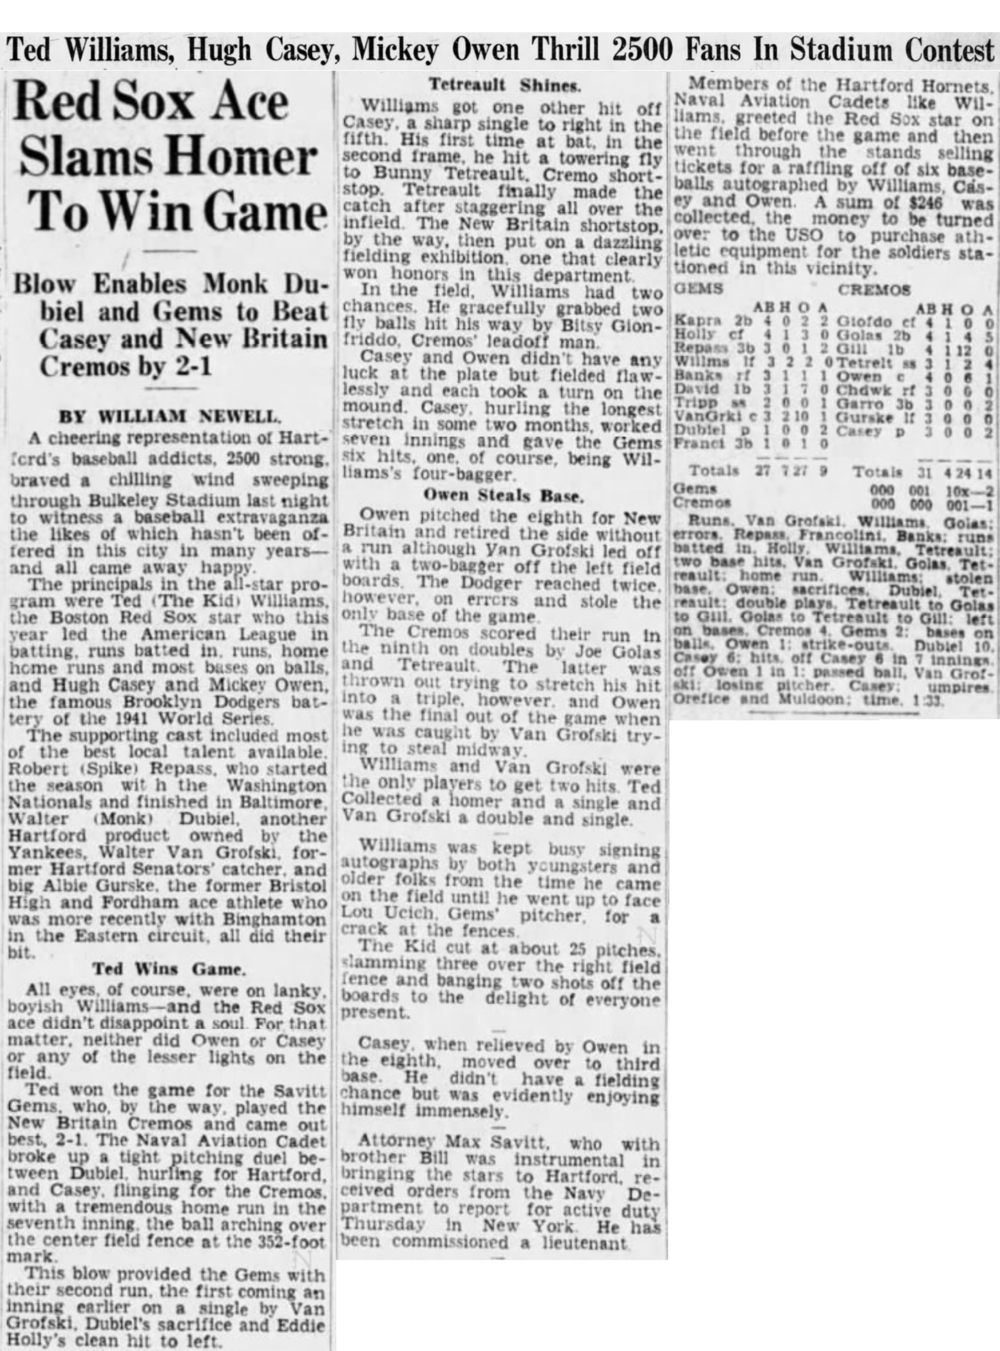 Hartford Courant excerpt from 1942